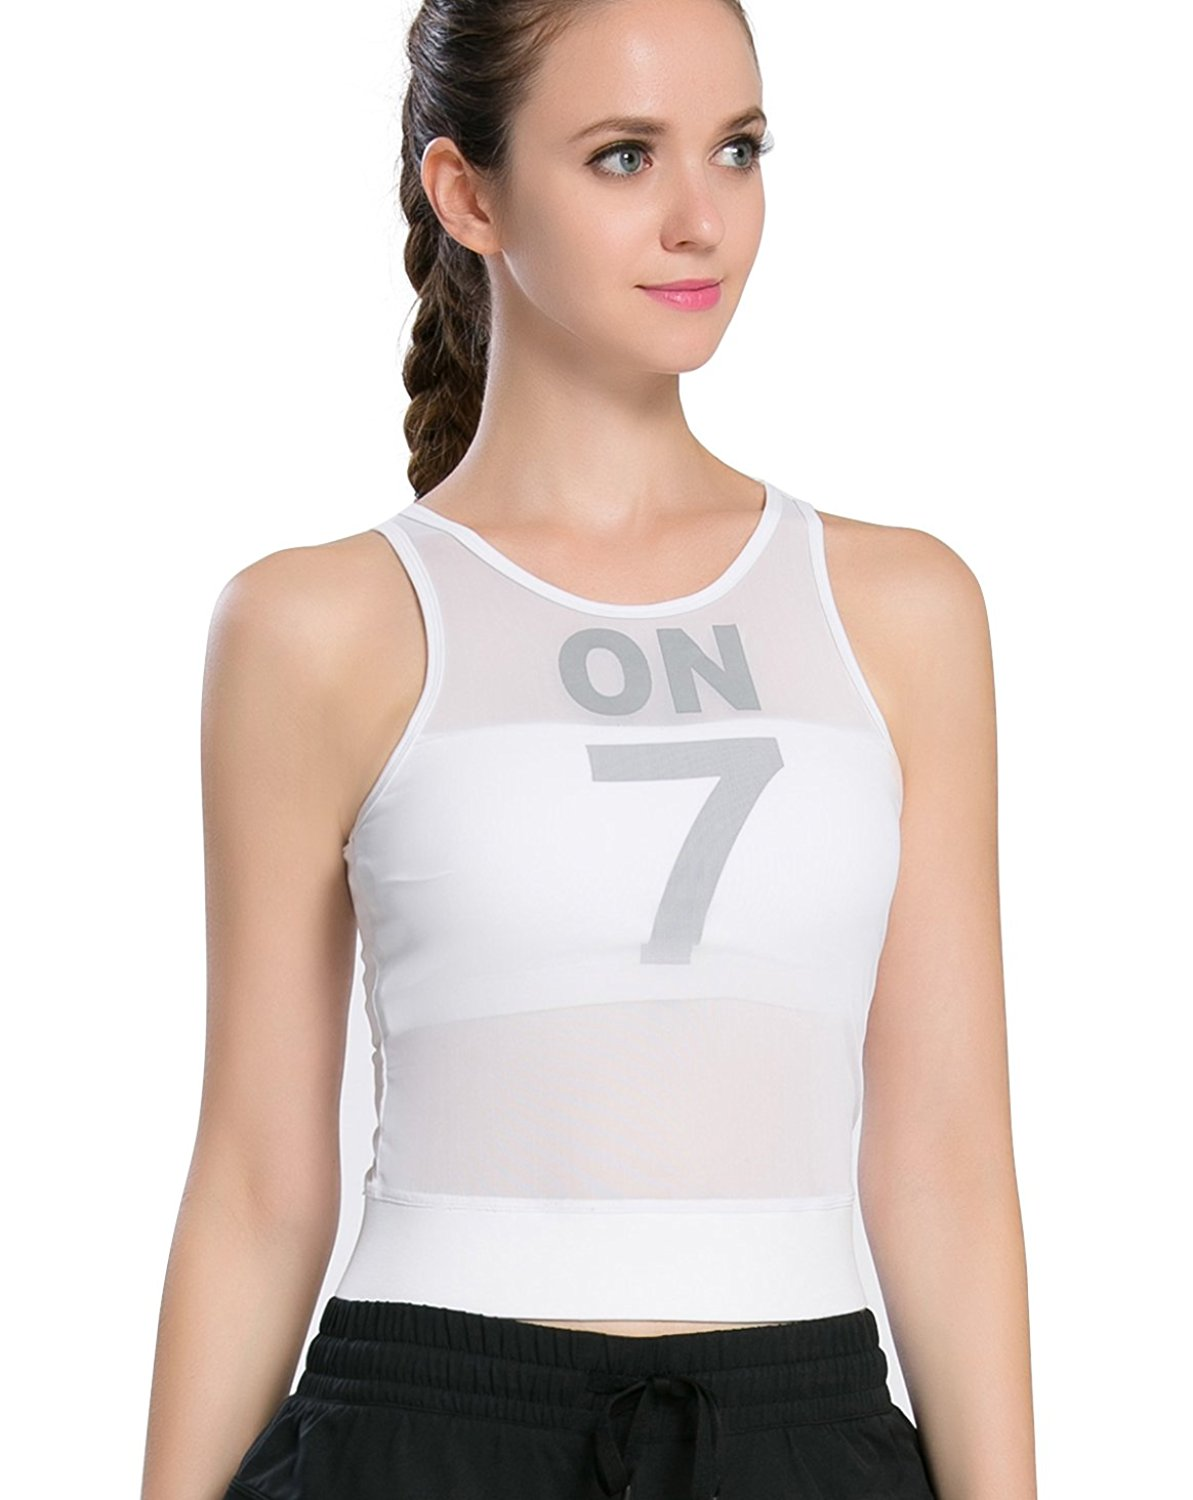 aef4133624 Get Quotations · Campeak Mesh Yoga Workout Sports Tank Tops Built-in Shelf  Bras for women